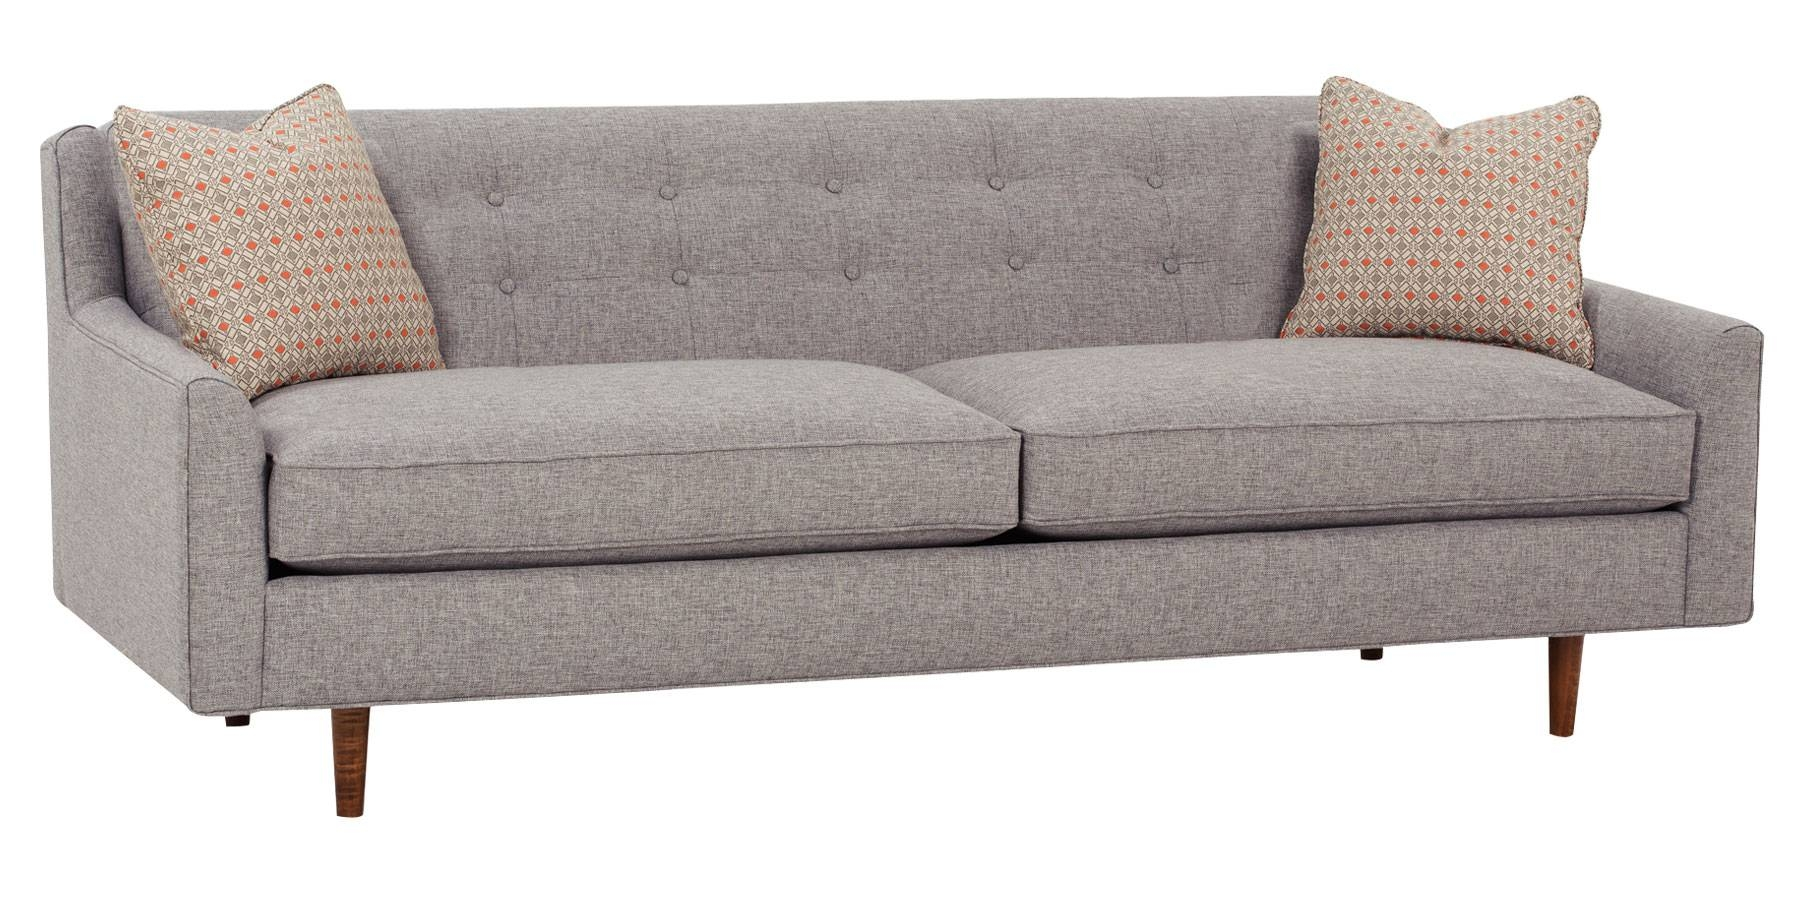 Sofas: Mid Century Sofas For Luxury Living Room Sofa Design pertaining to Bench Style Sofas (Image 12 of 15)